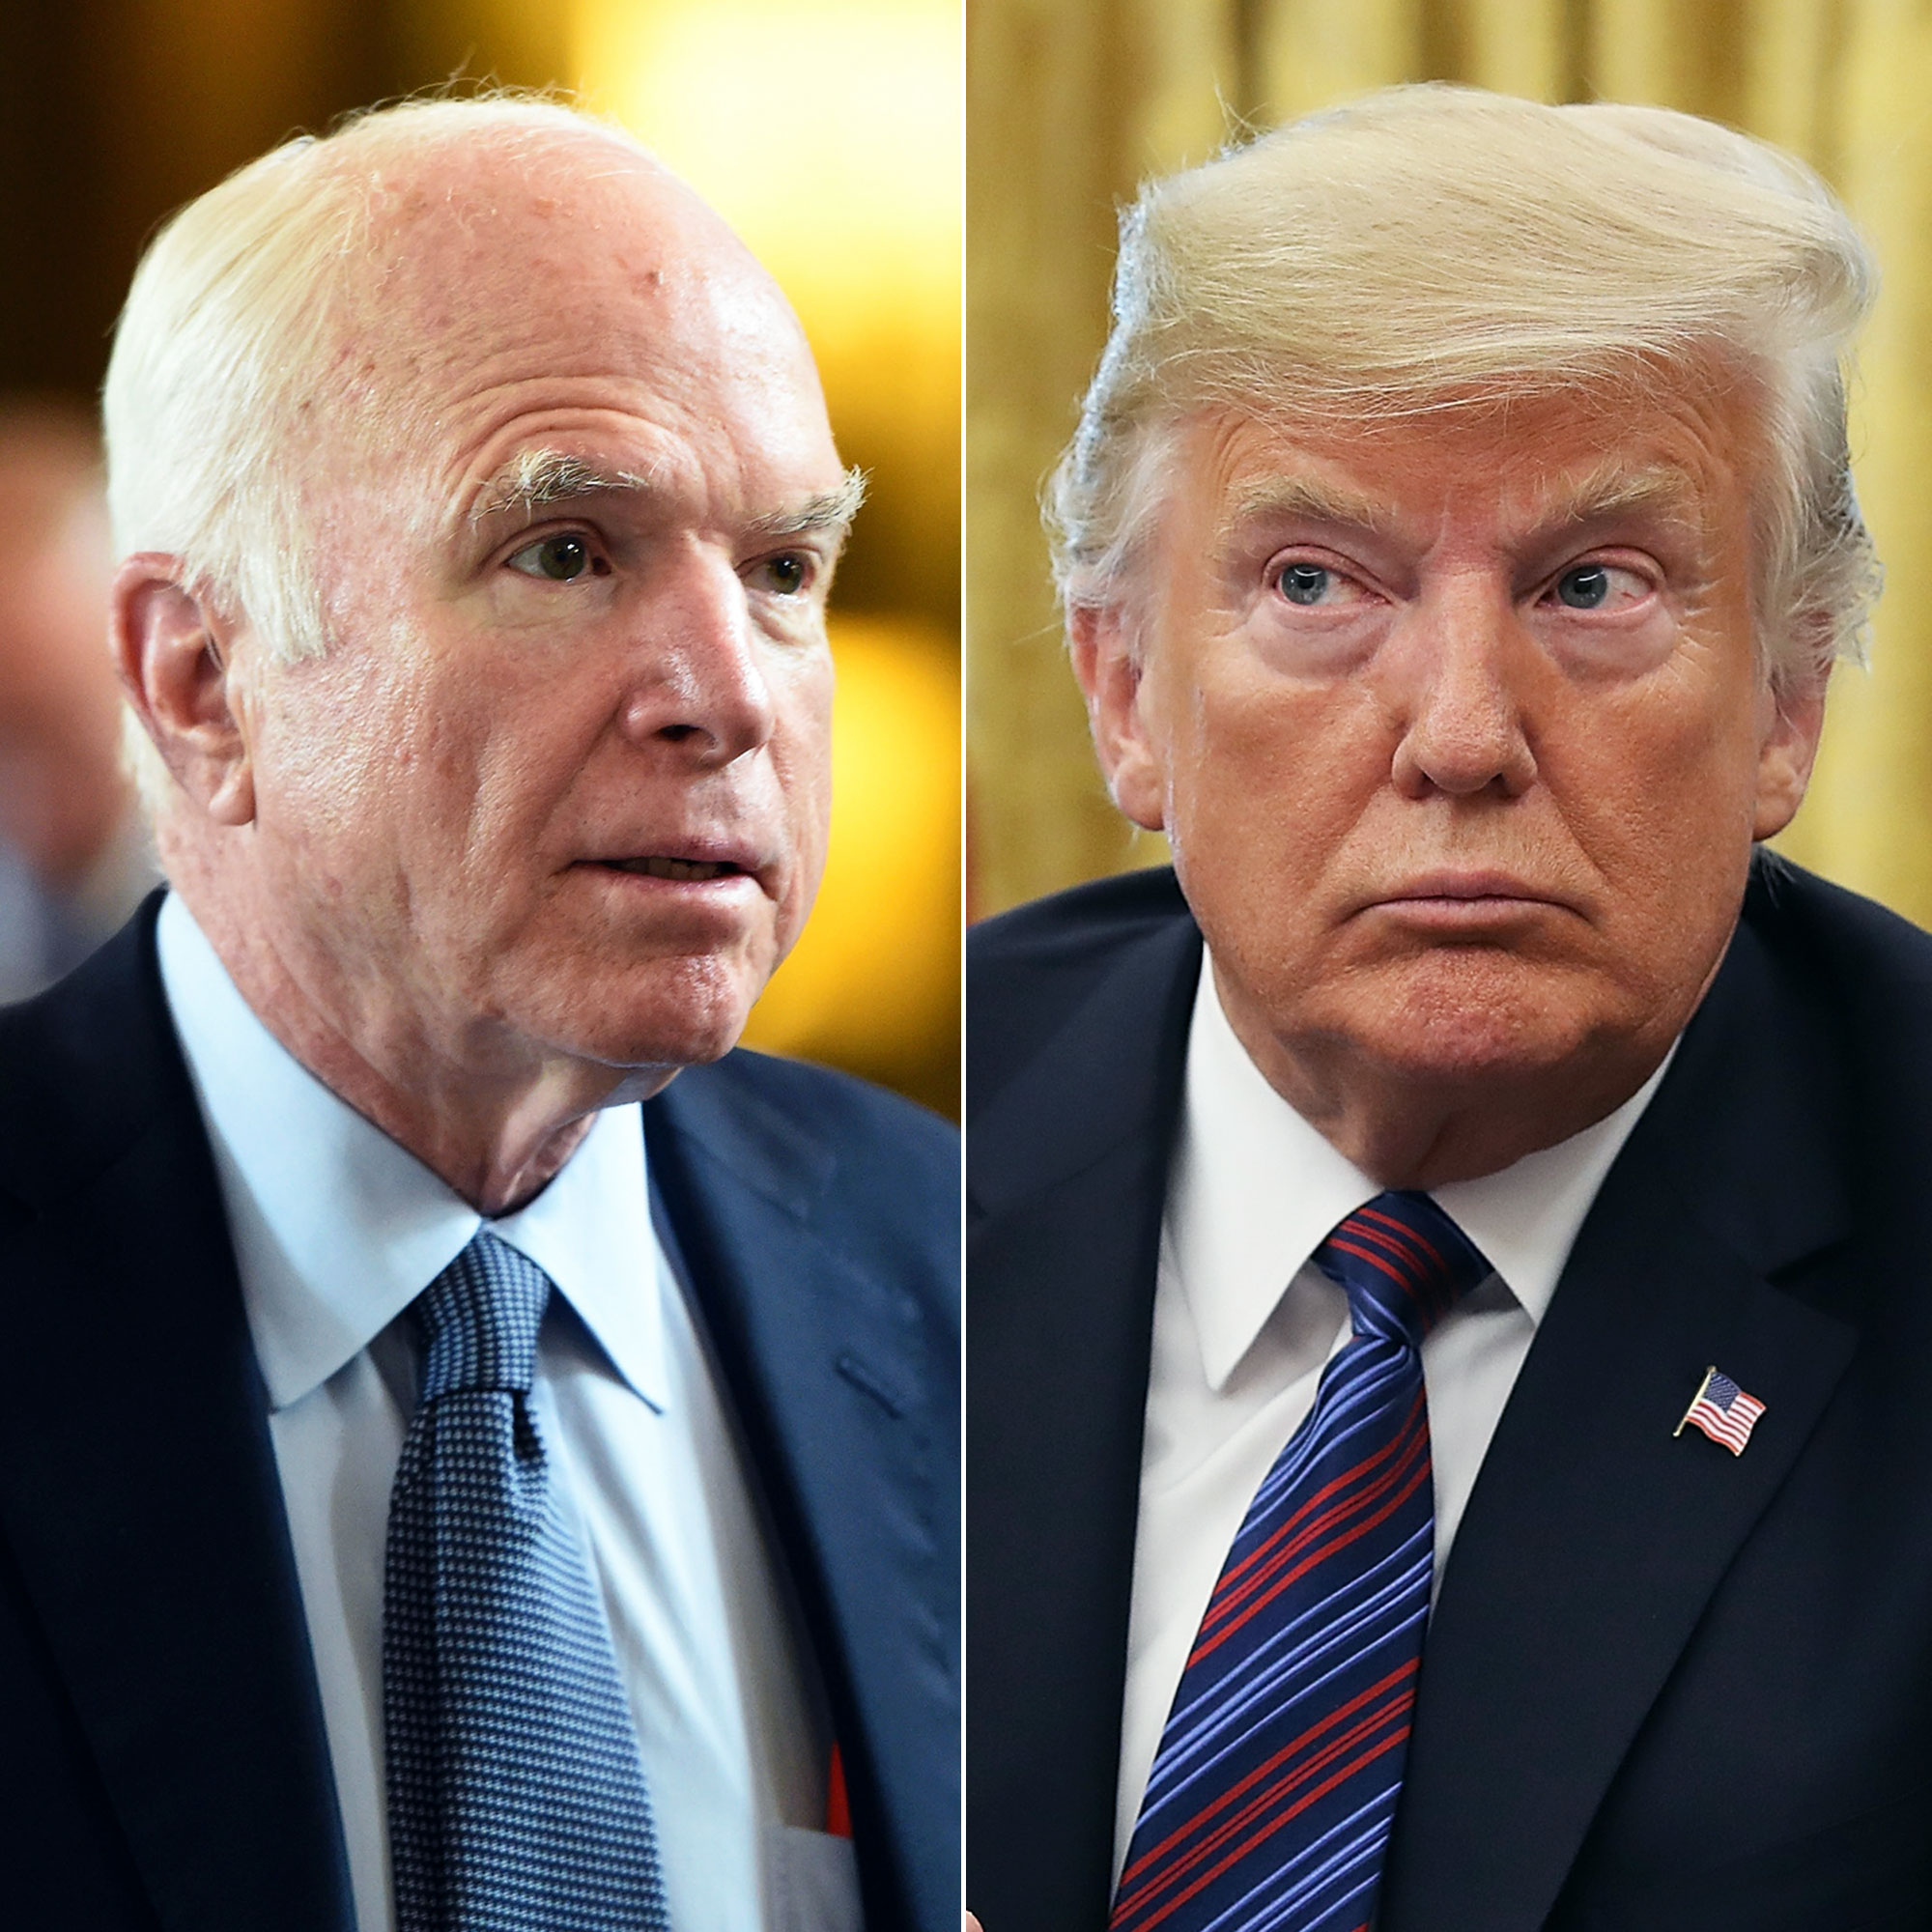 John Mccain Latest News Photos And Videos: John McCain Takes Aim At Donald Trump In Final Message